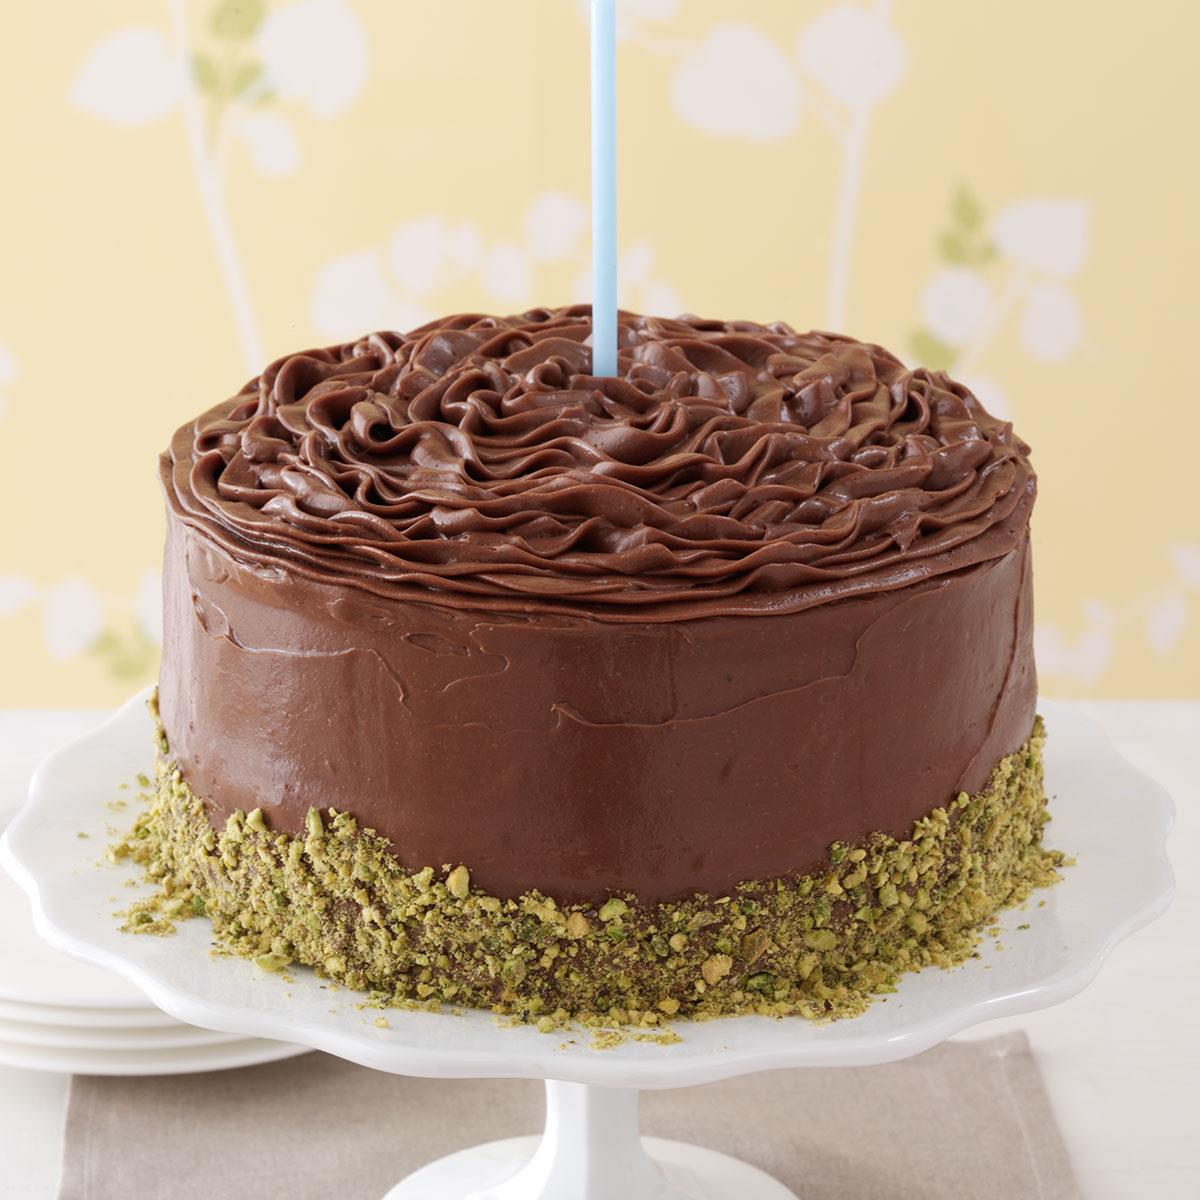 Banana Cake With Chocolate Frosting Recipe Taste Of Home